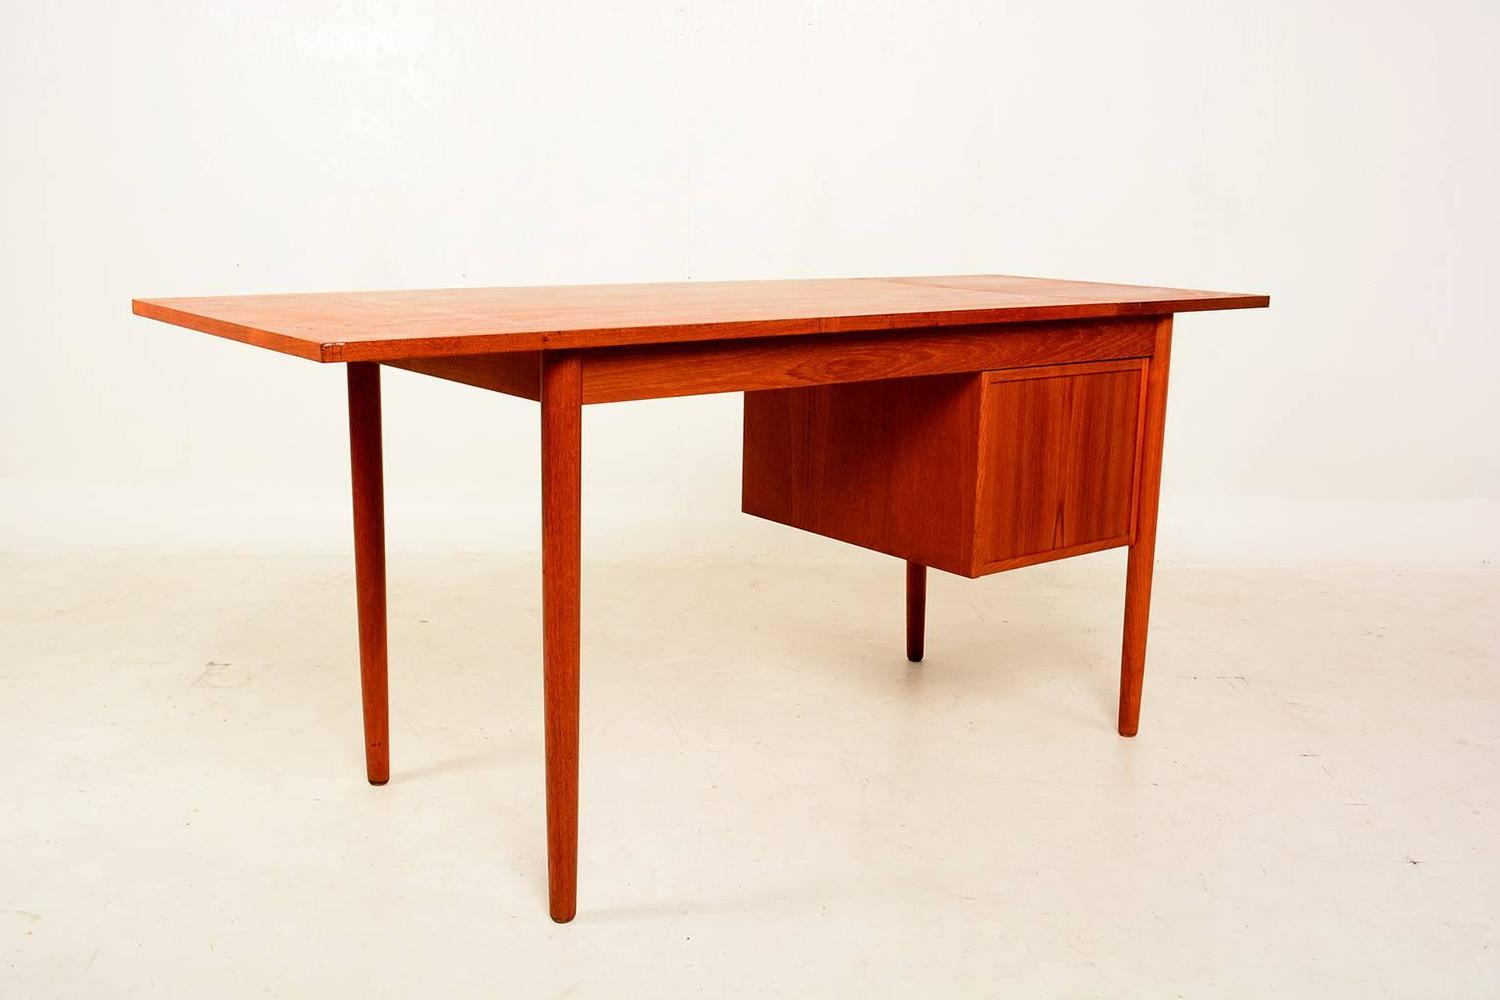 #410101 Danish Modern Teak Desk Sliding Drawers At 1stdibs with 1500x1000 px of Recommended Modern Desk With Drawers 10001500 save image @ avoidforclosure.info